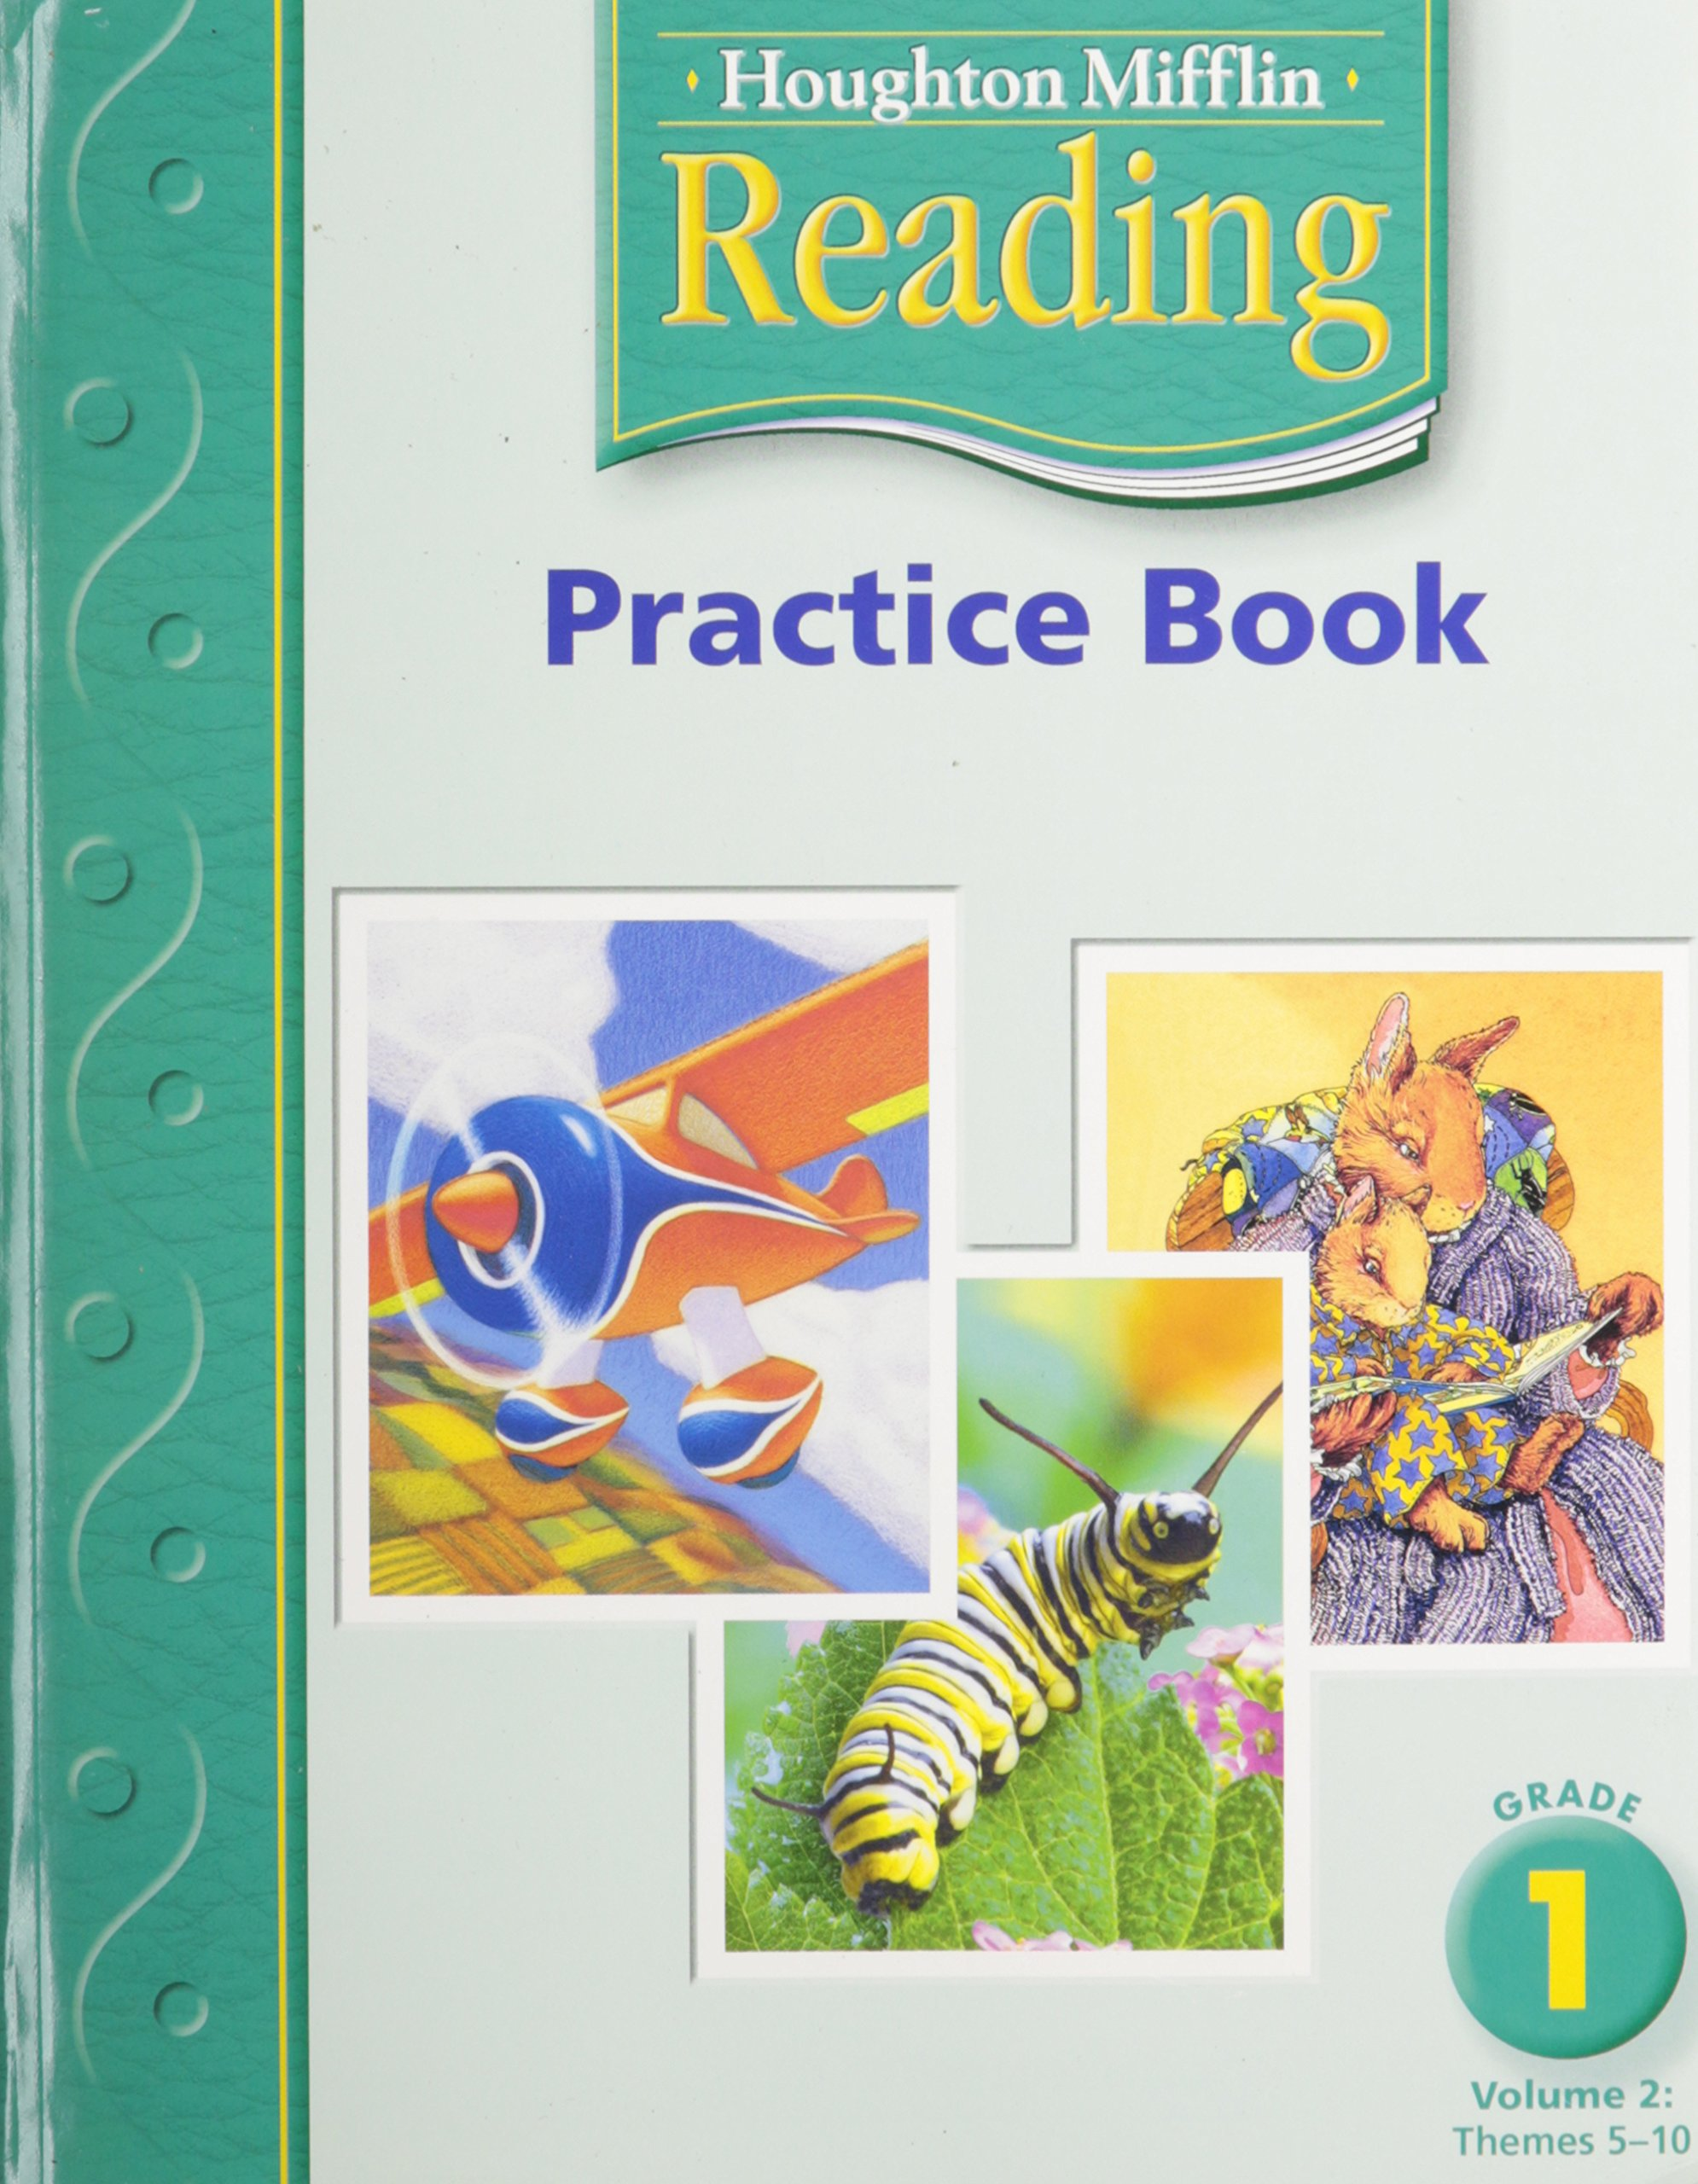 Reading practice book grade 1 vol 2 houghton mifflin reading reading practice book grade 1 vol 2 houghton mifflin reading houghton mifflin 9780618384716 amazon books ccuart